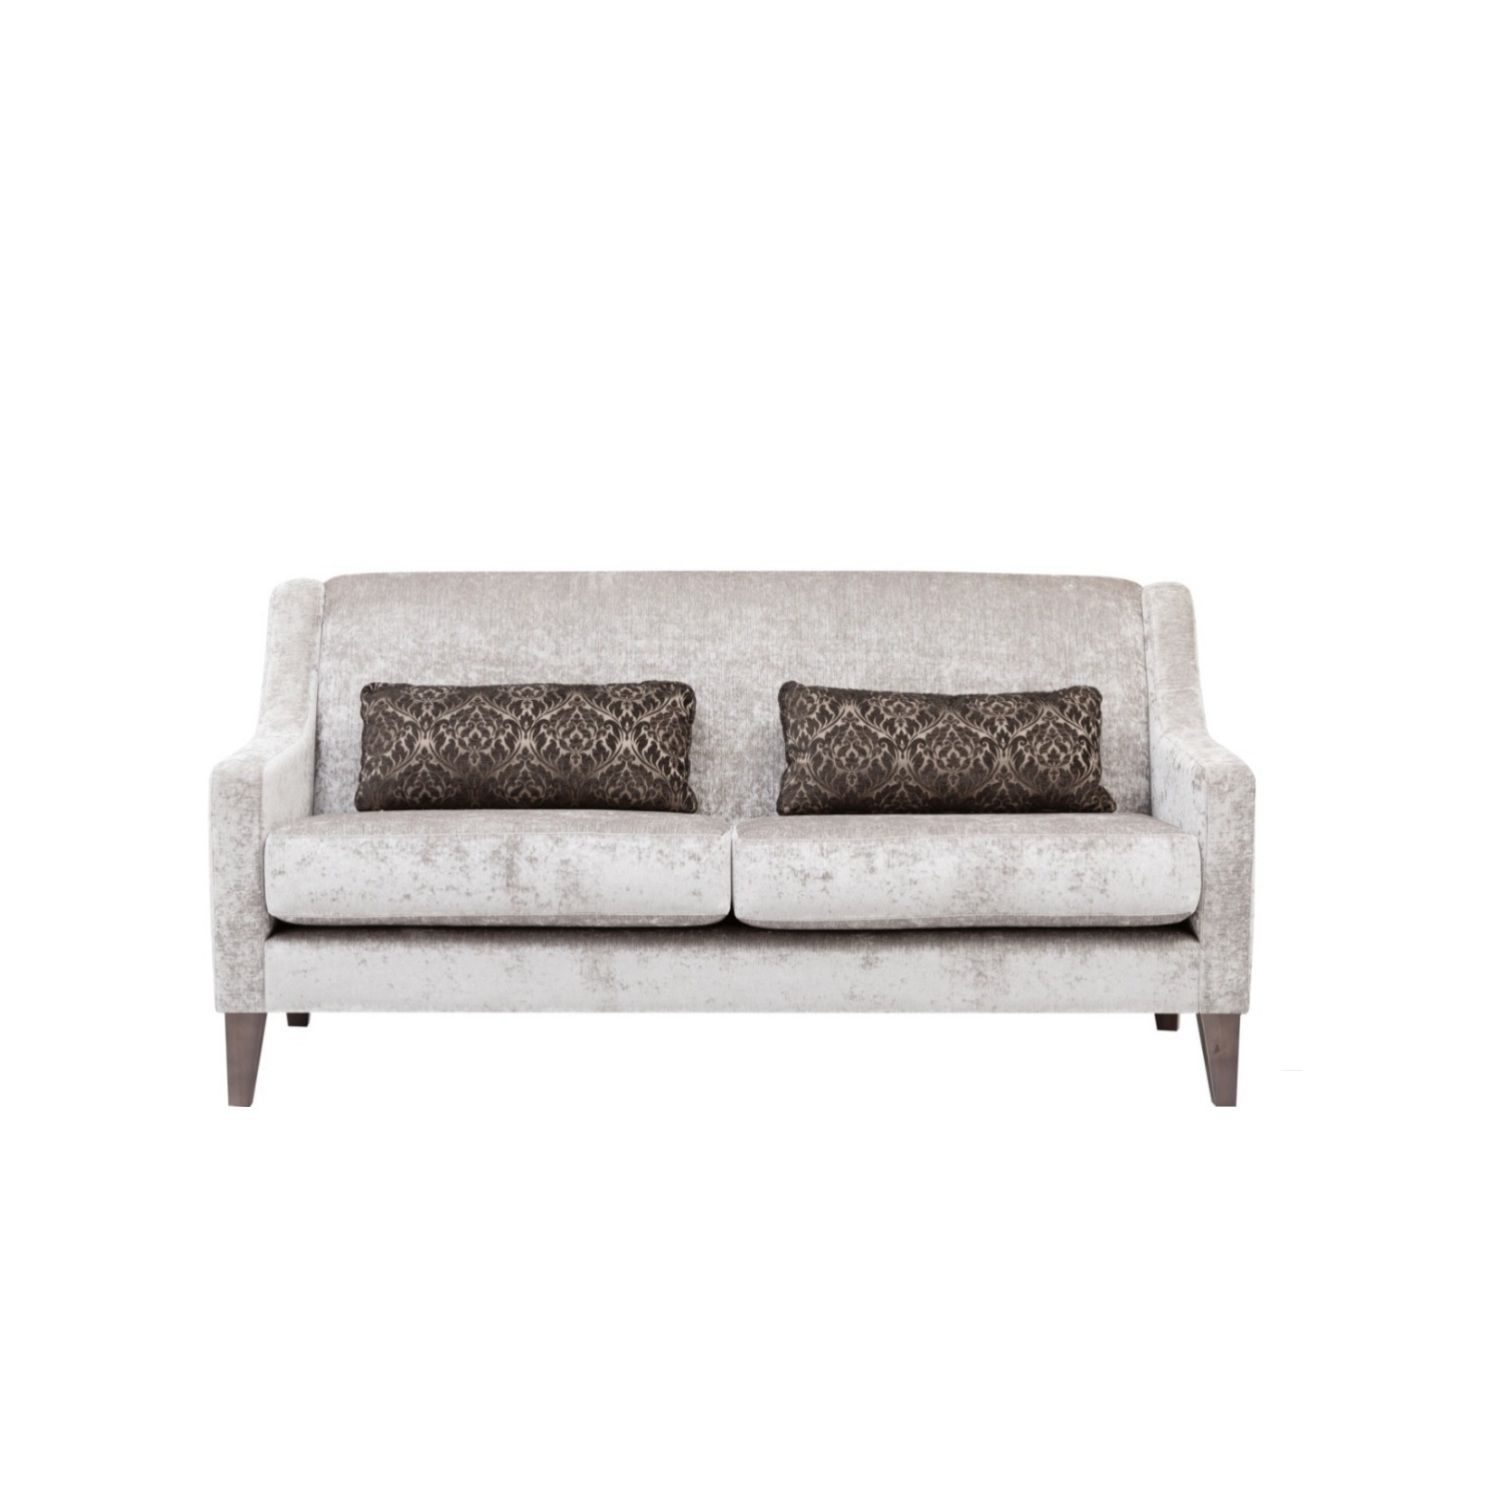 Roberto Fabric Sofa from Domayne line